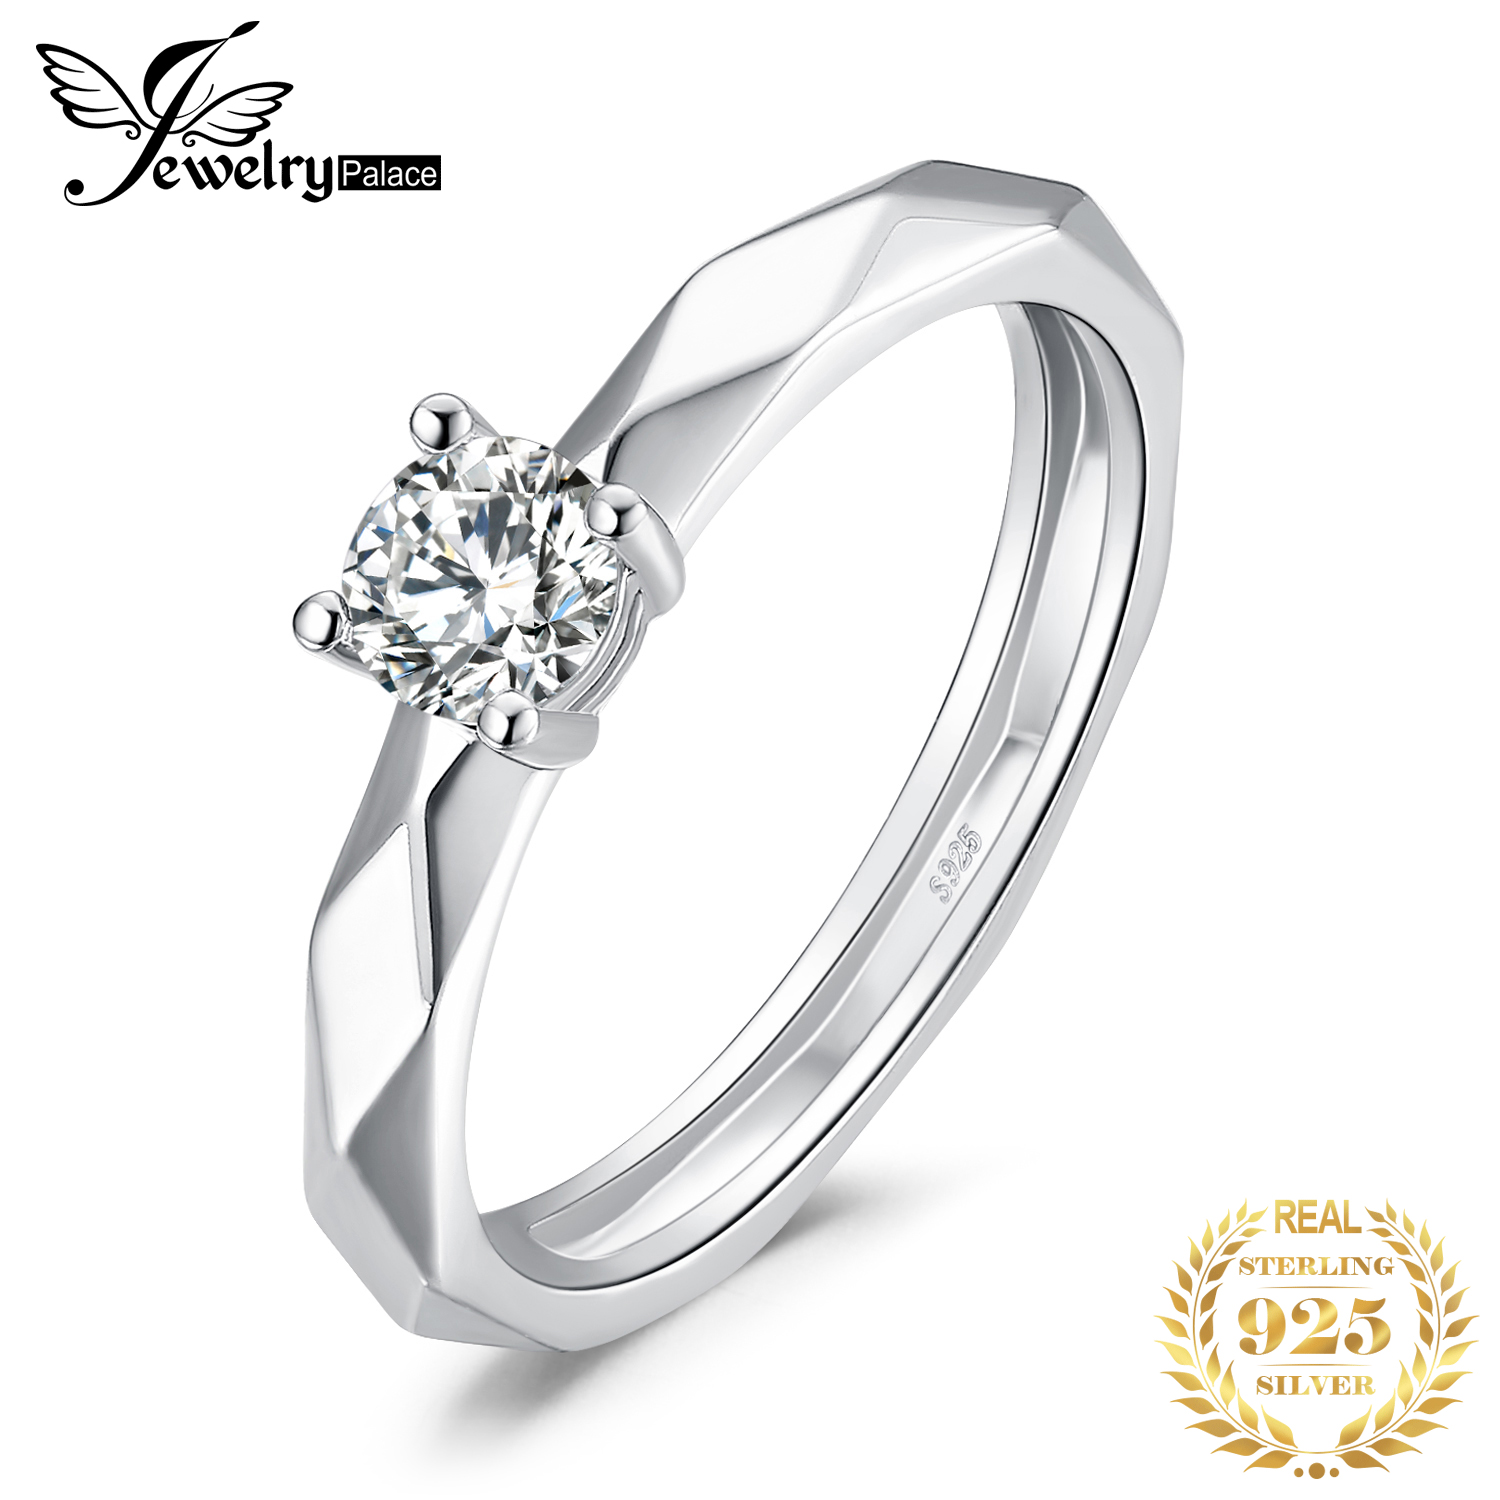 JPalace Cubic Zirconia Engagement Ring 925 Sterling Silver Rings For Women Anniversary Ring Wedding Rings Silver 925 Jewelry